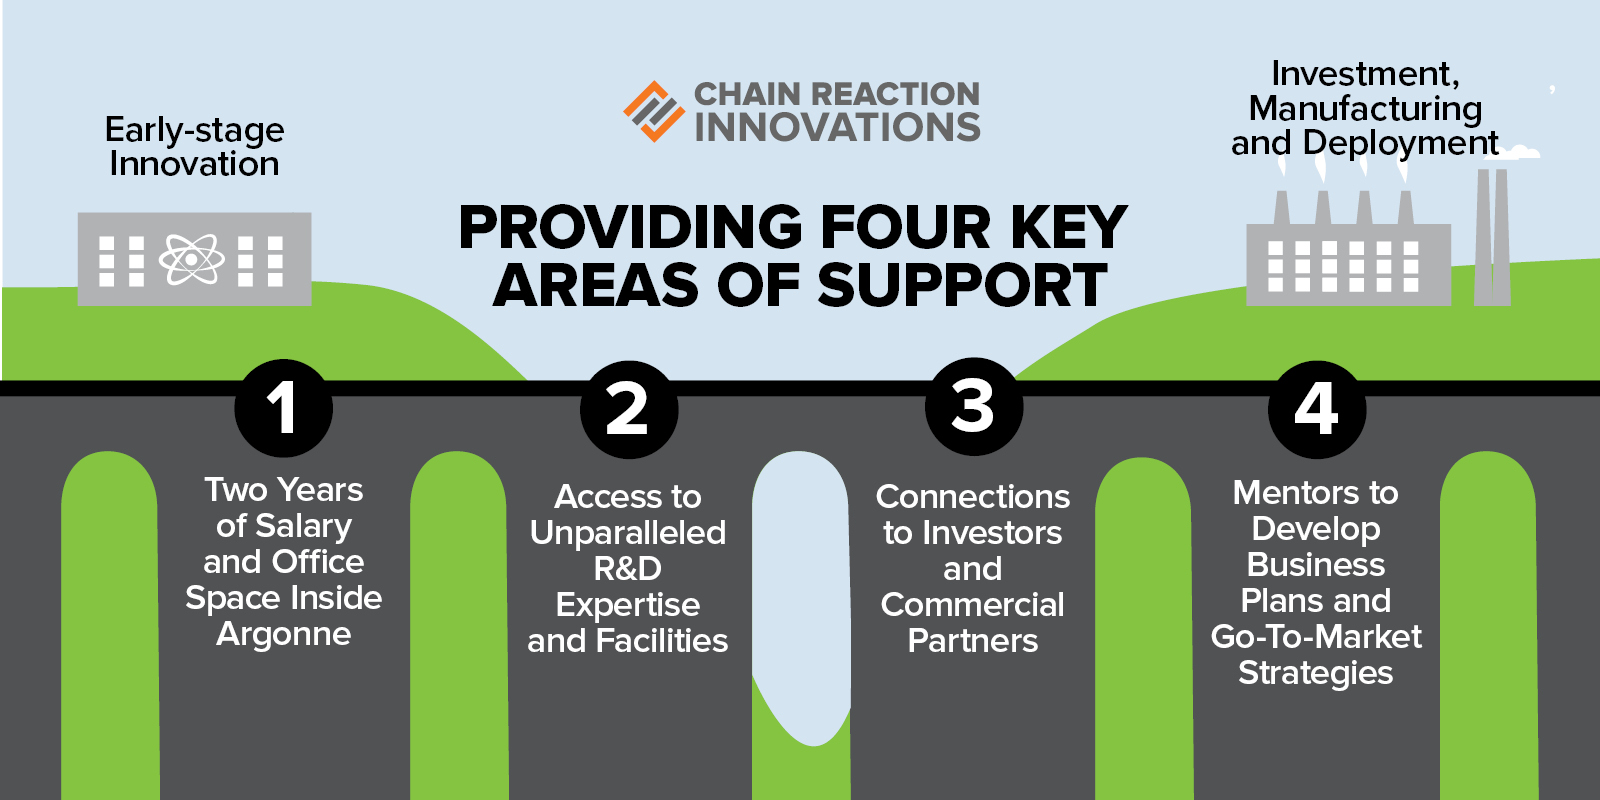 Providing four key areas of support: 1. Two years of salary and office space inside Argonne, 2. Access to Unparalleled R&D Expertise and Facilities, 3. Connections to investors and commercial partners, 4. Mentors to develop business plans and go-to-market strategies